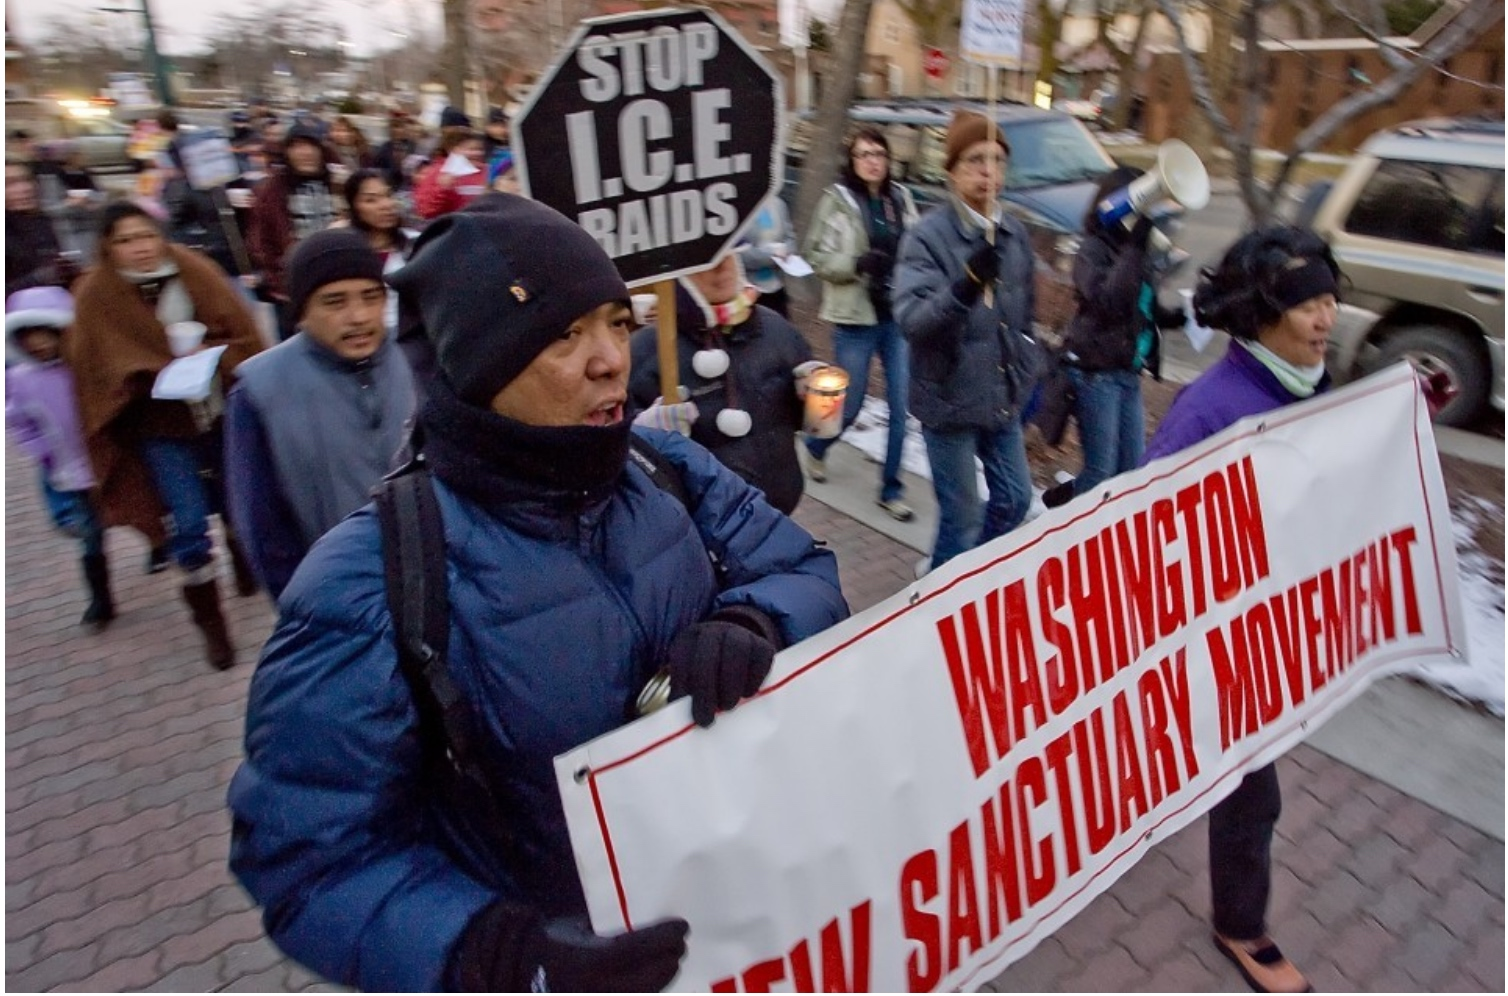 sanctuary movement parade